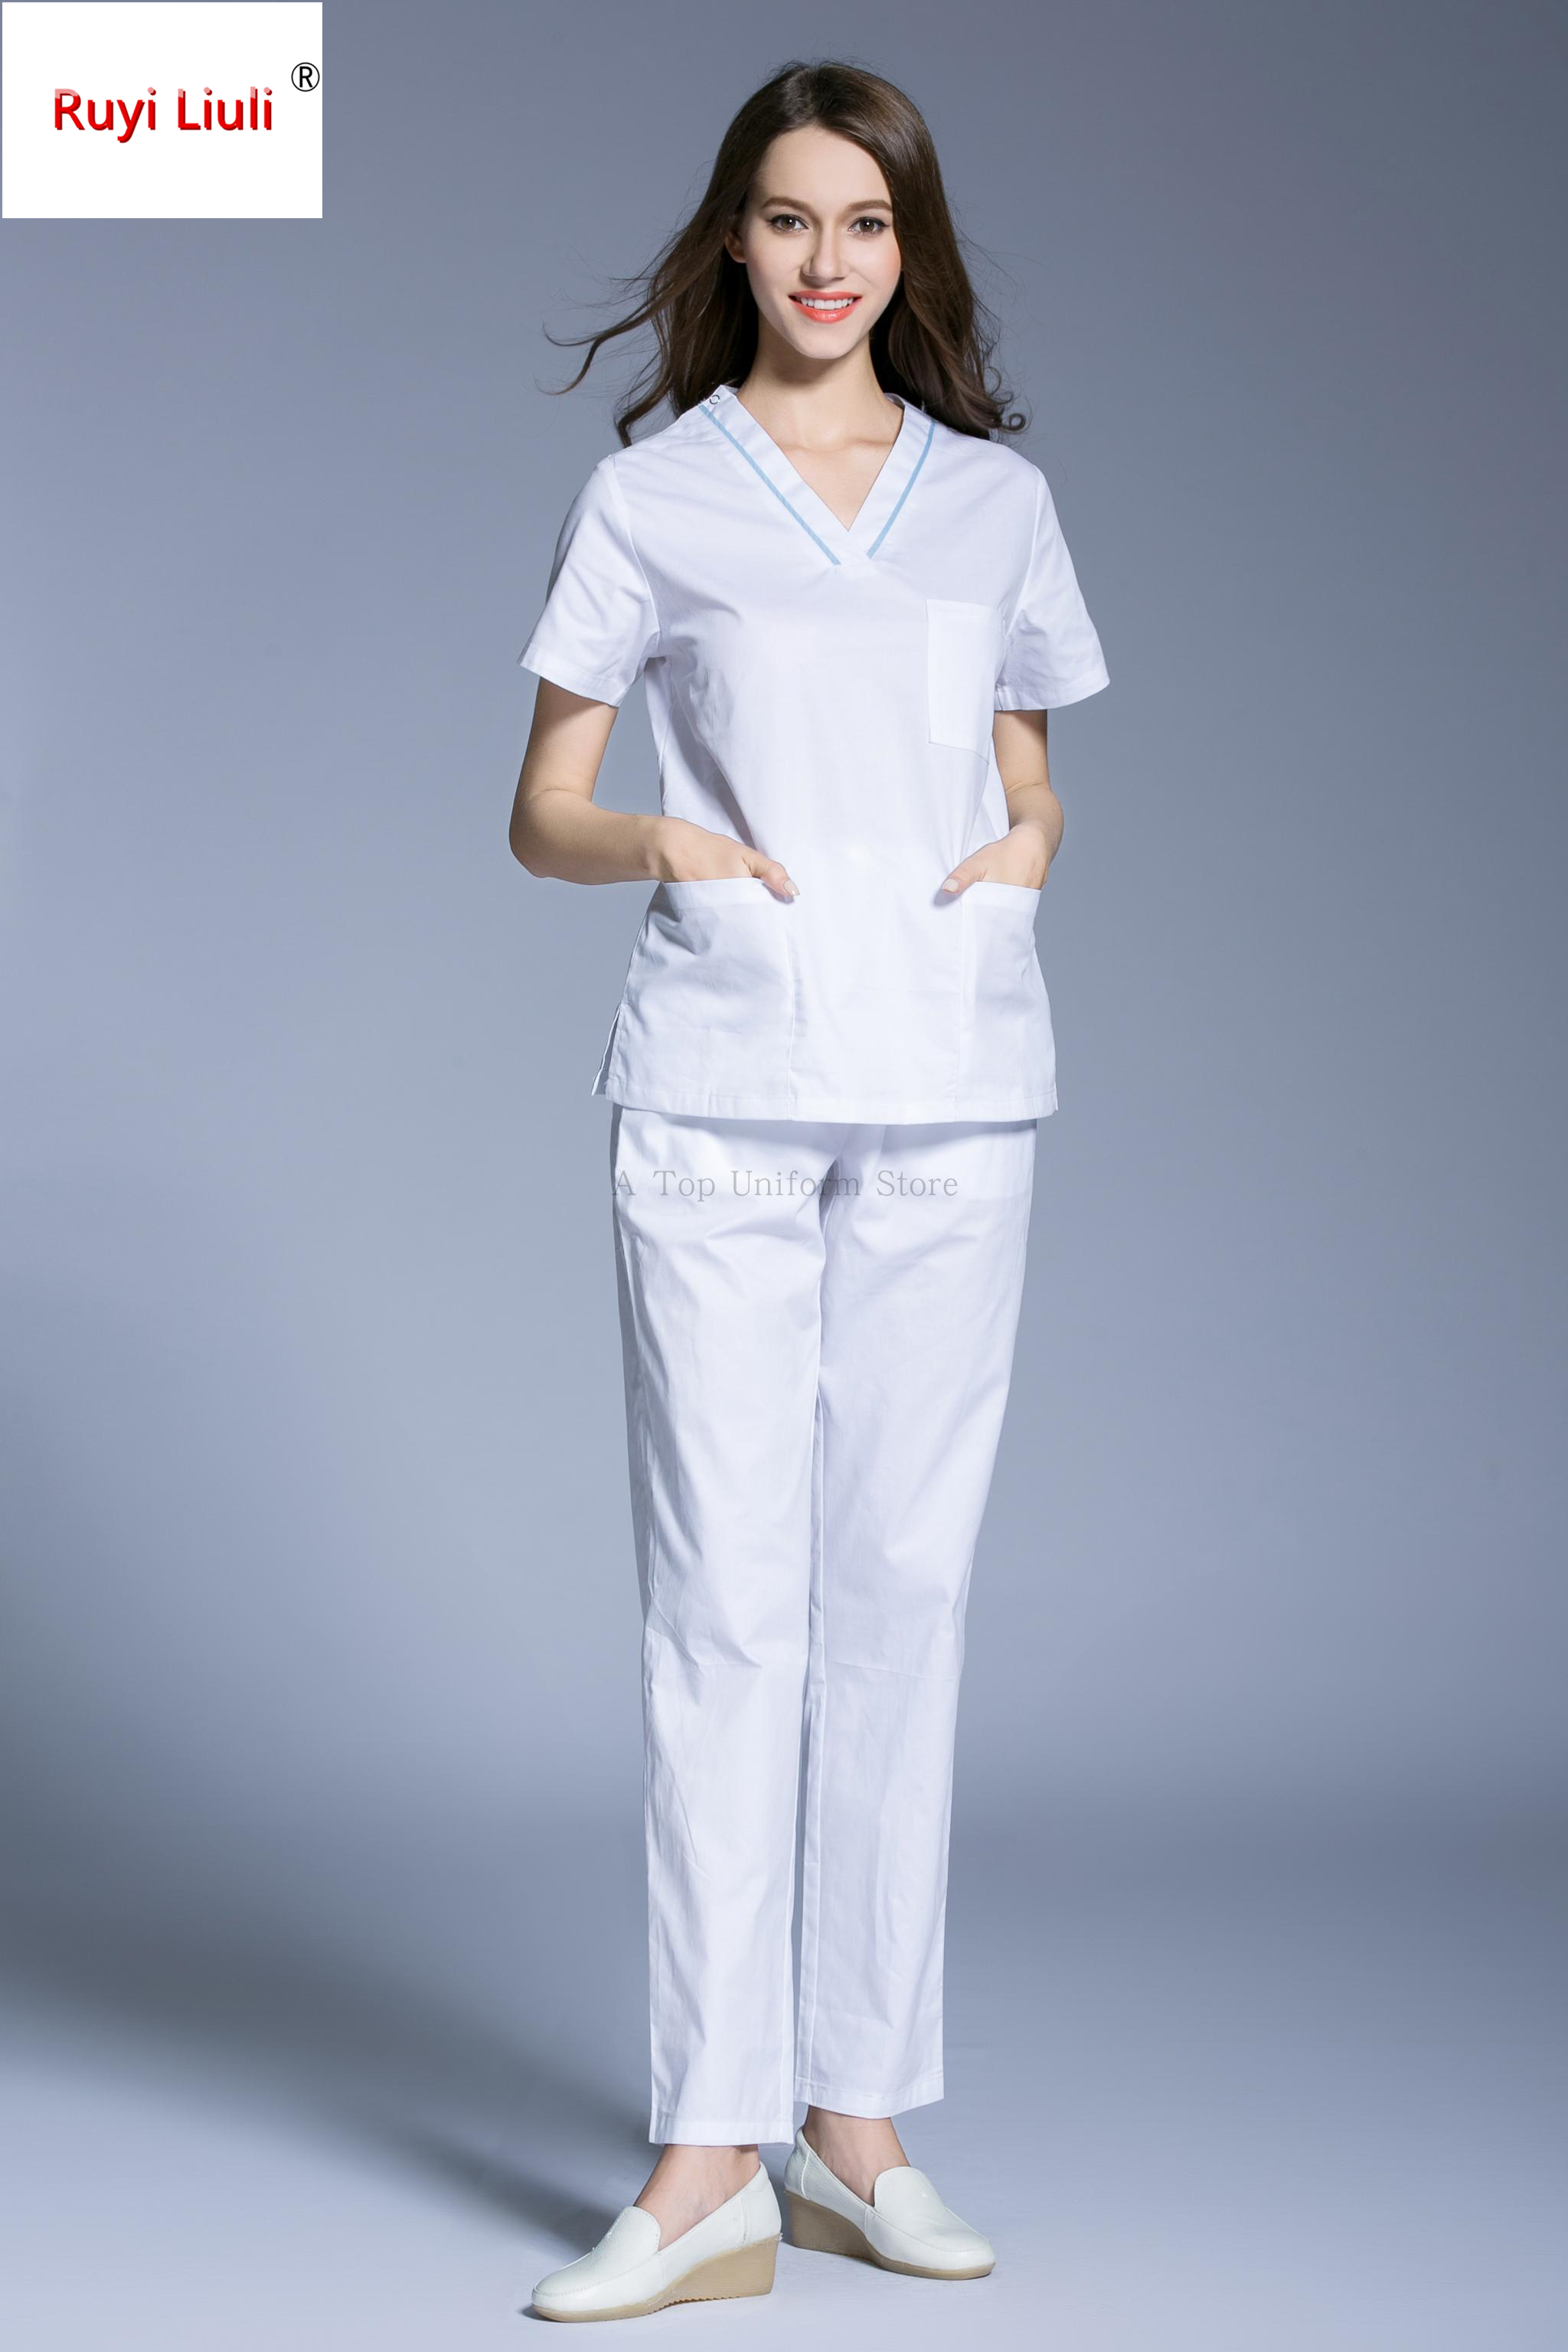 New Fashion Medical Uniforms Nursing Scrubs Clothes Short Sleeve Coat Summer Short Sleeve Work Wear Uniform Women Medical beauty